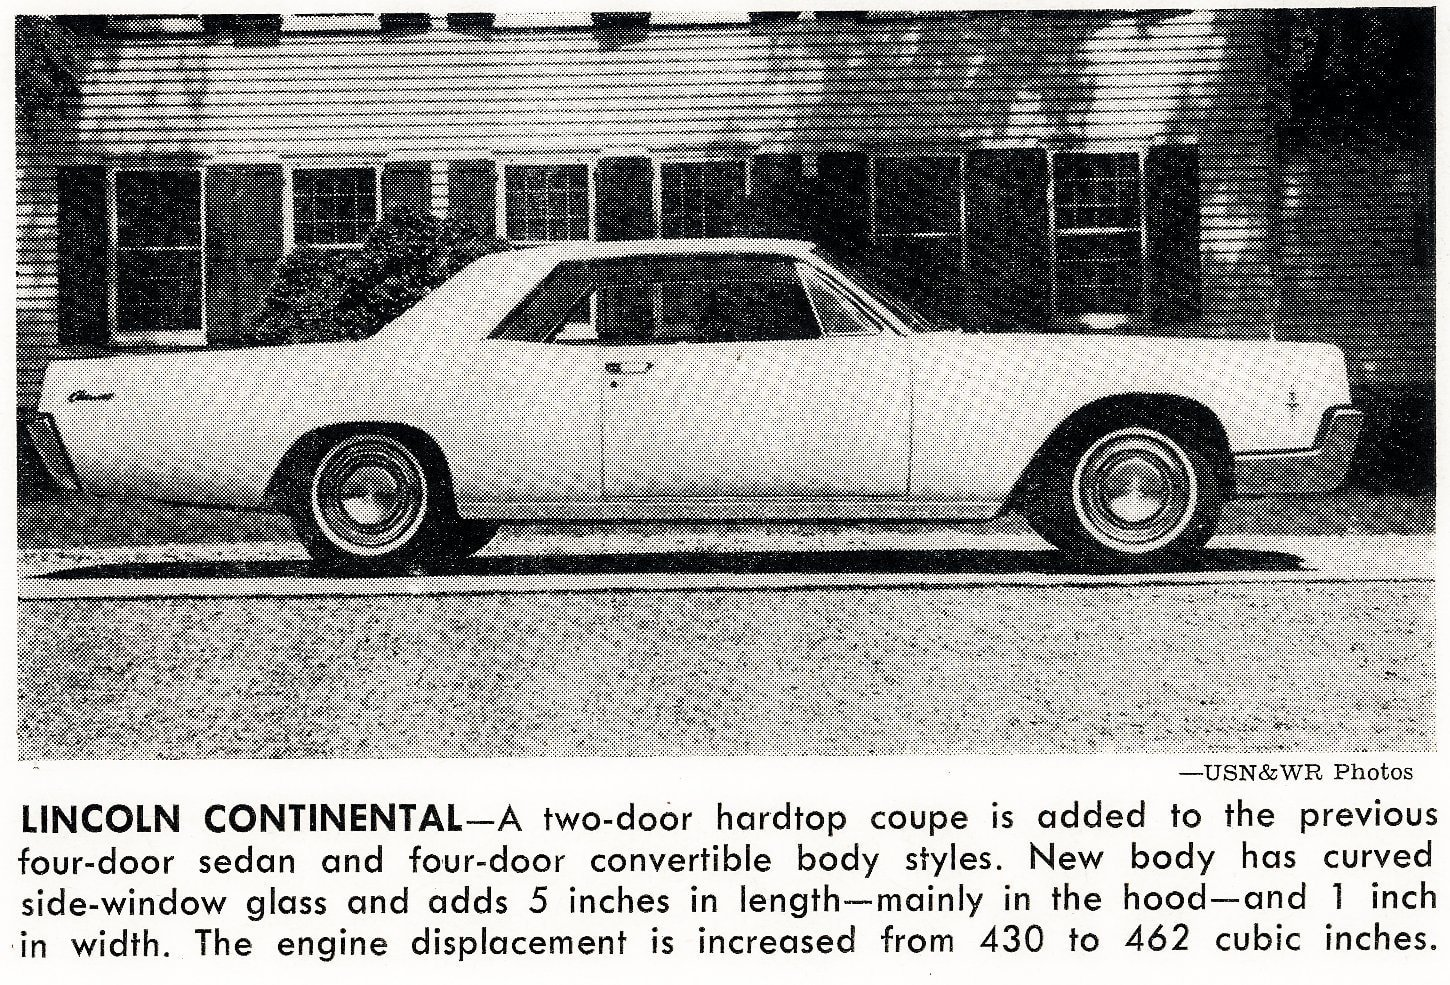 Vintage cars -- Lincoln Continental (1965)